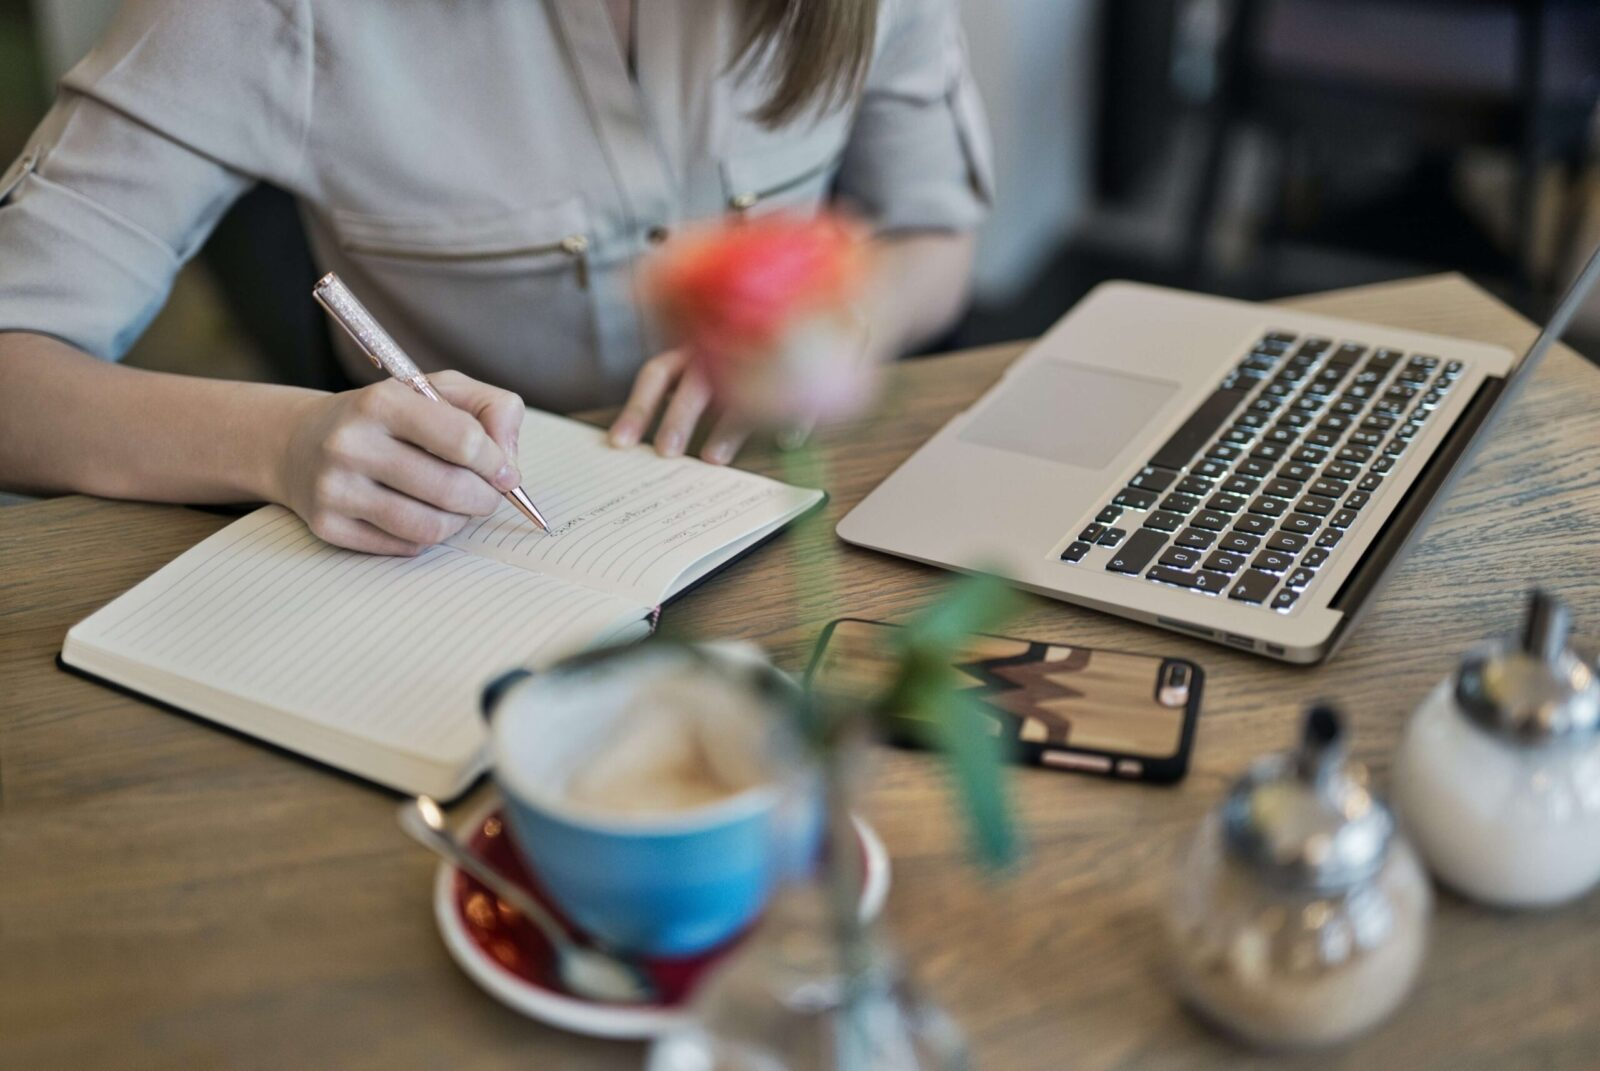 woman's hand writing in a notebook on a table with laptop and coffee mug